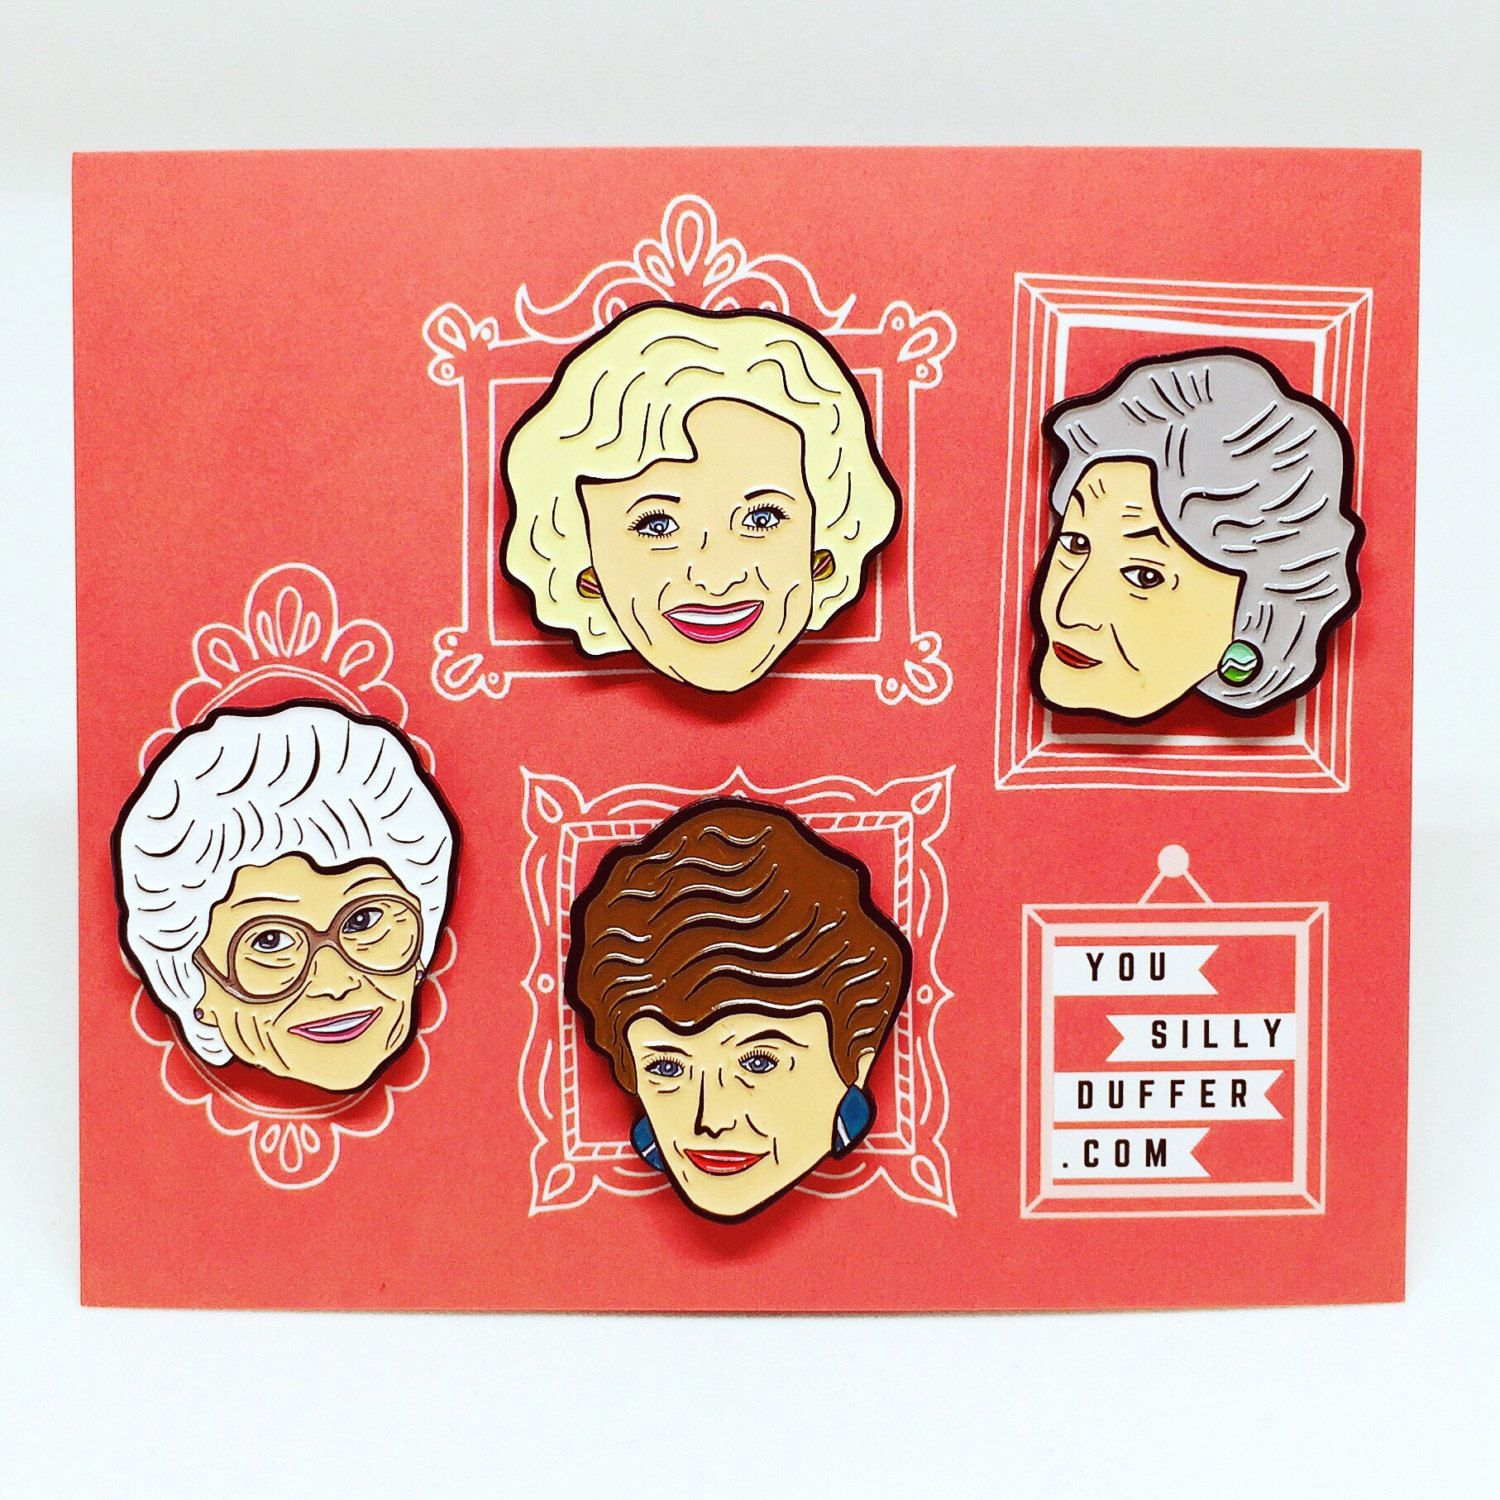 29 Best Golden Girls Merchandise in 2018 - Funny Golden